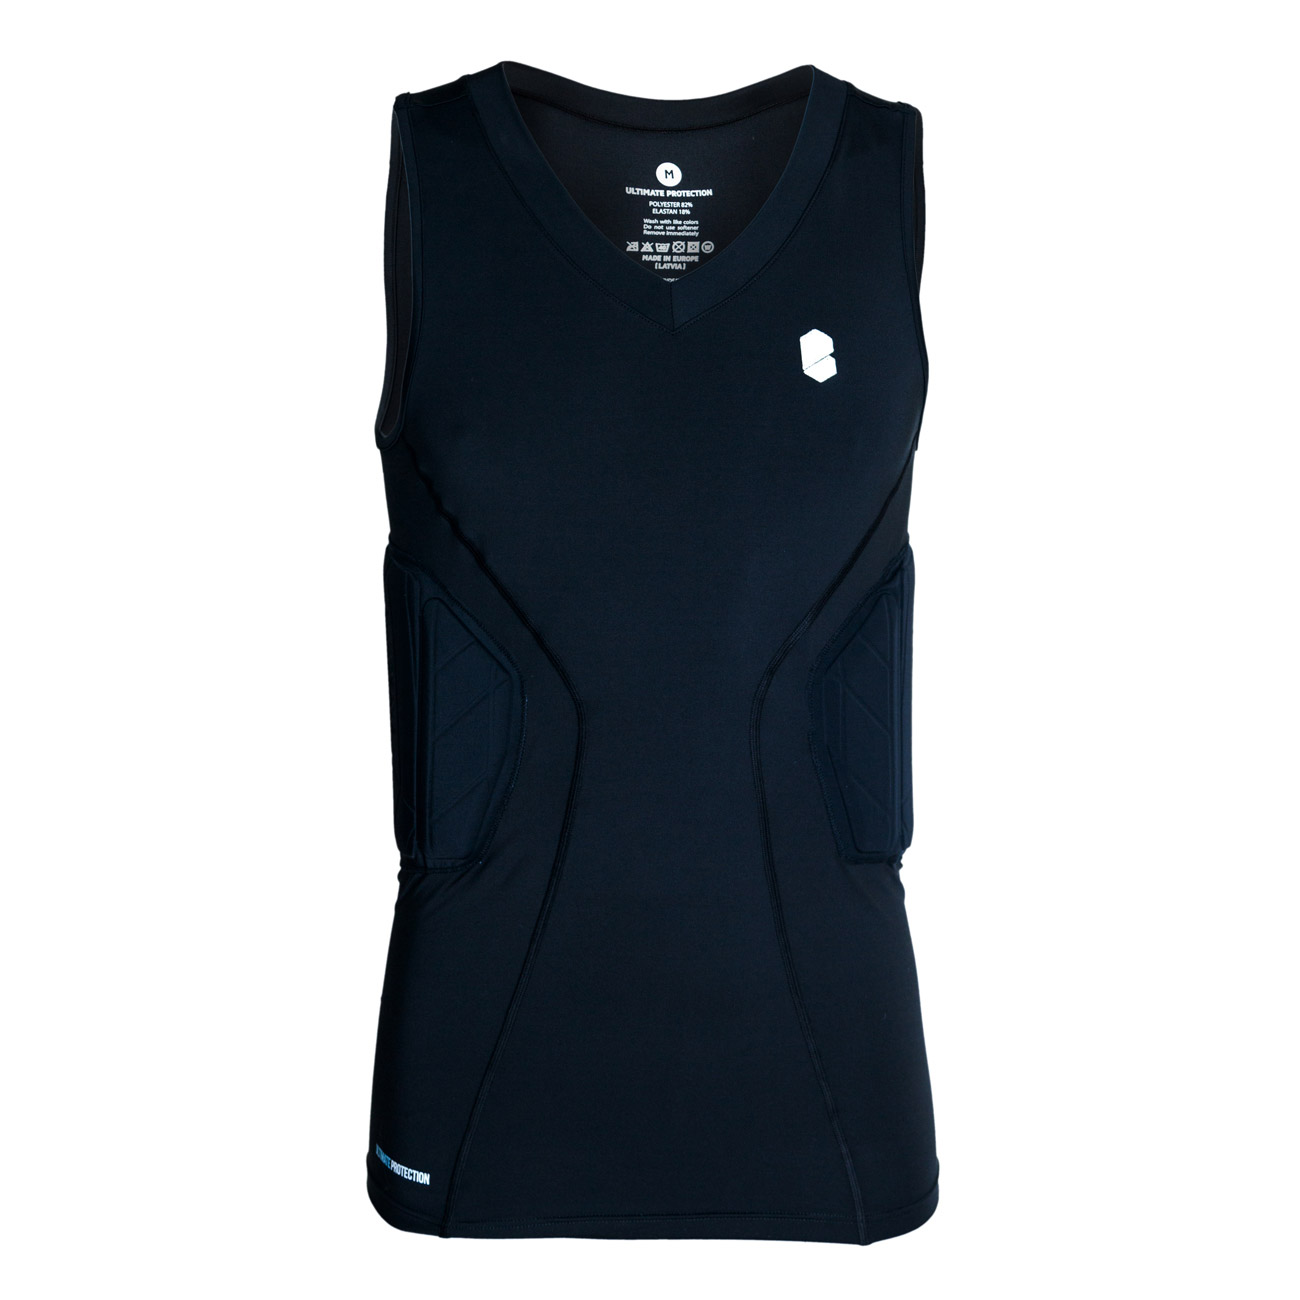 BLINDSAVE Protective Shirt PRO